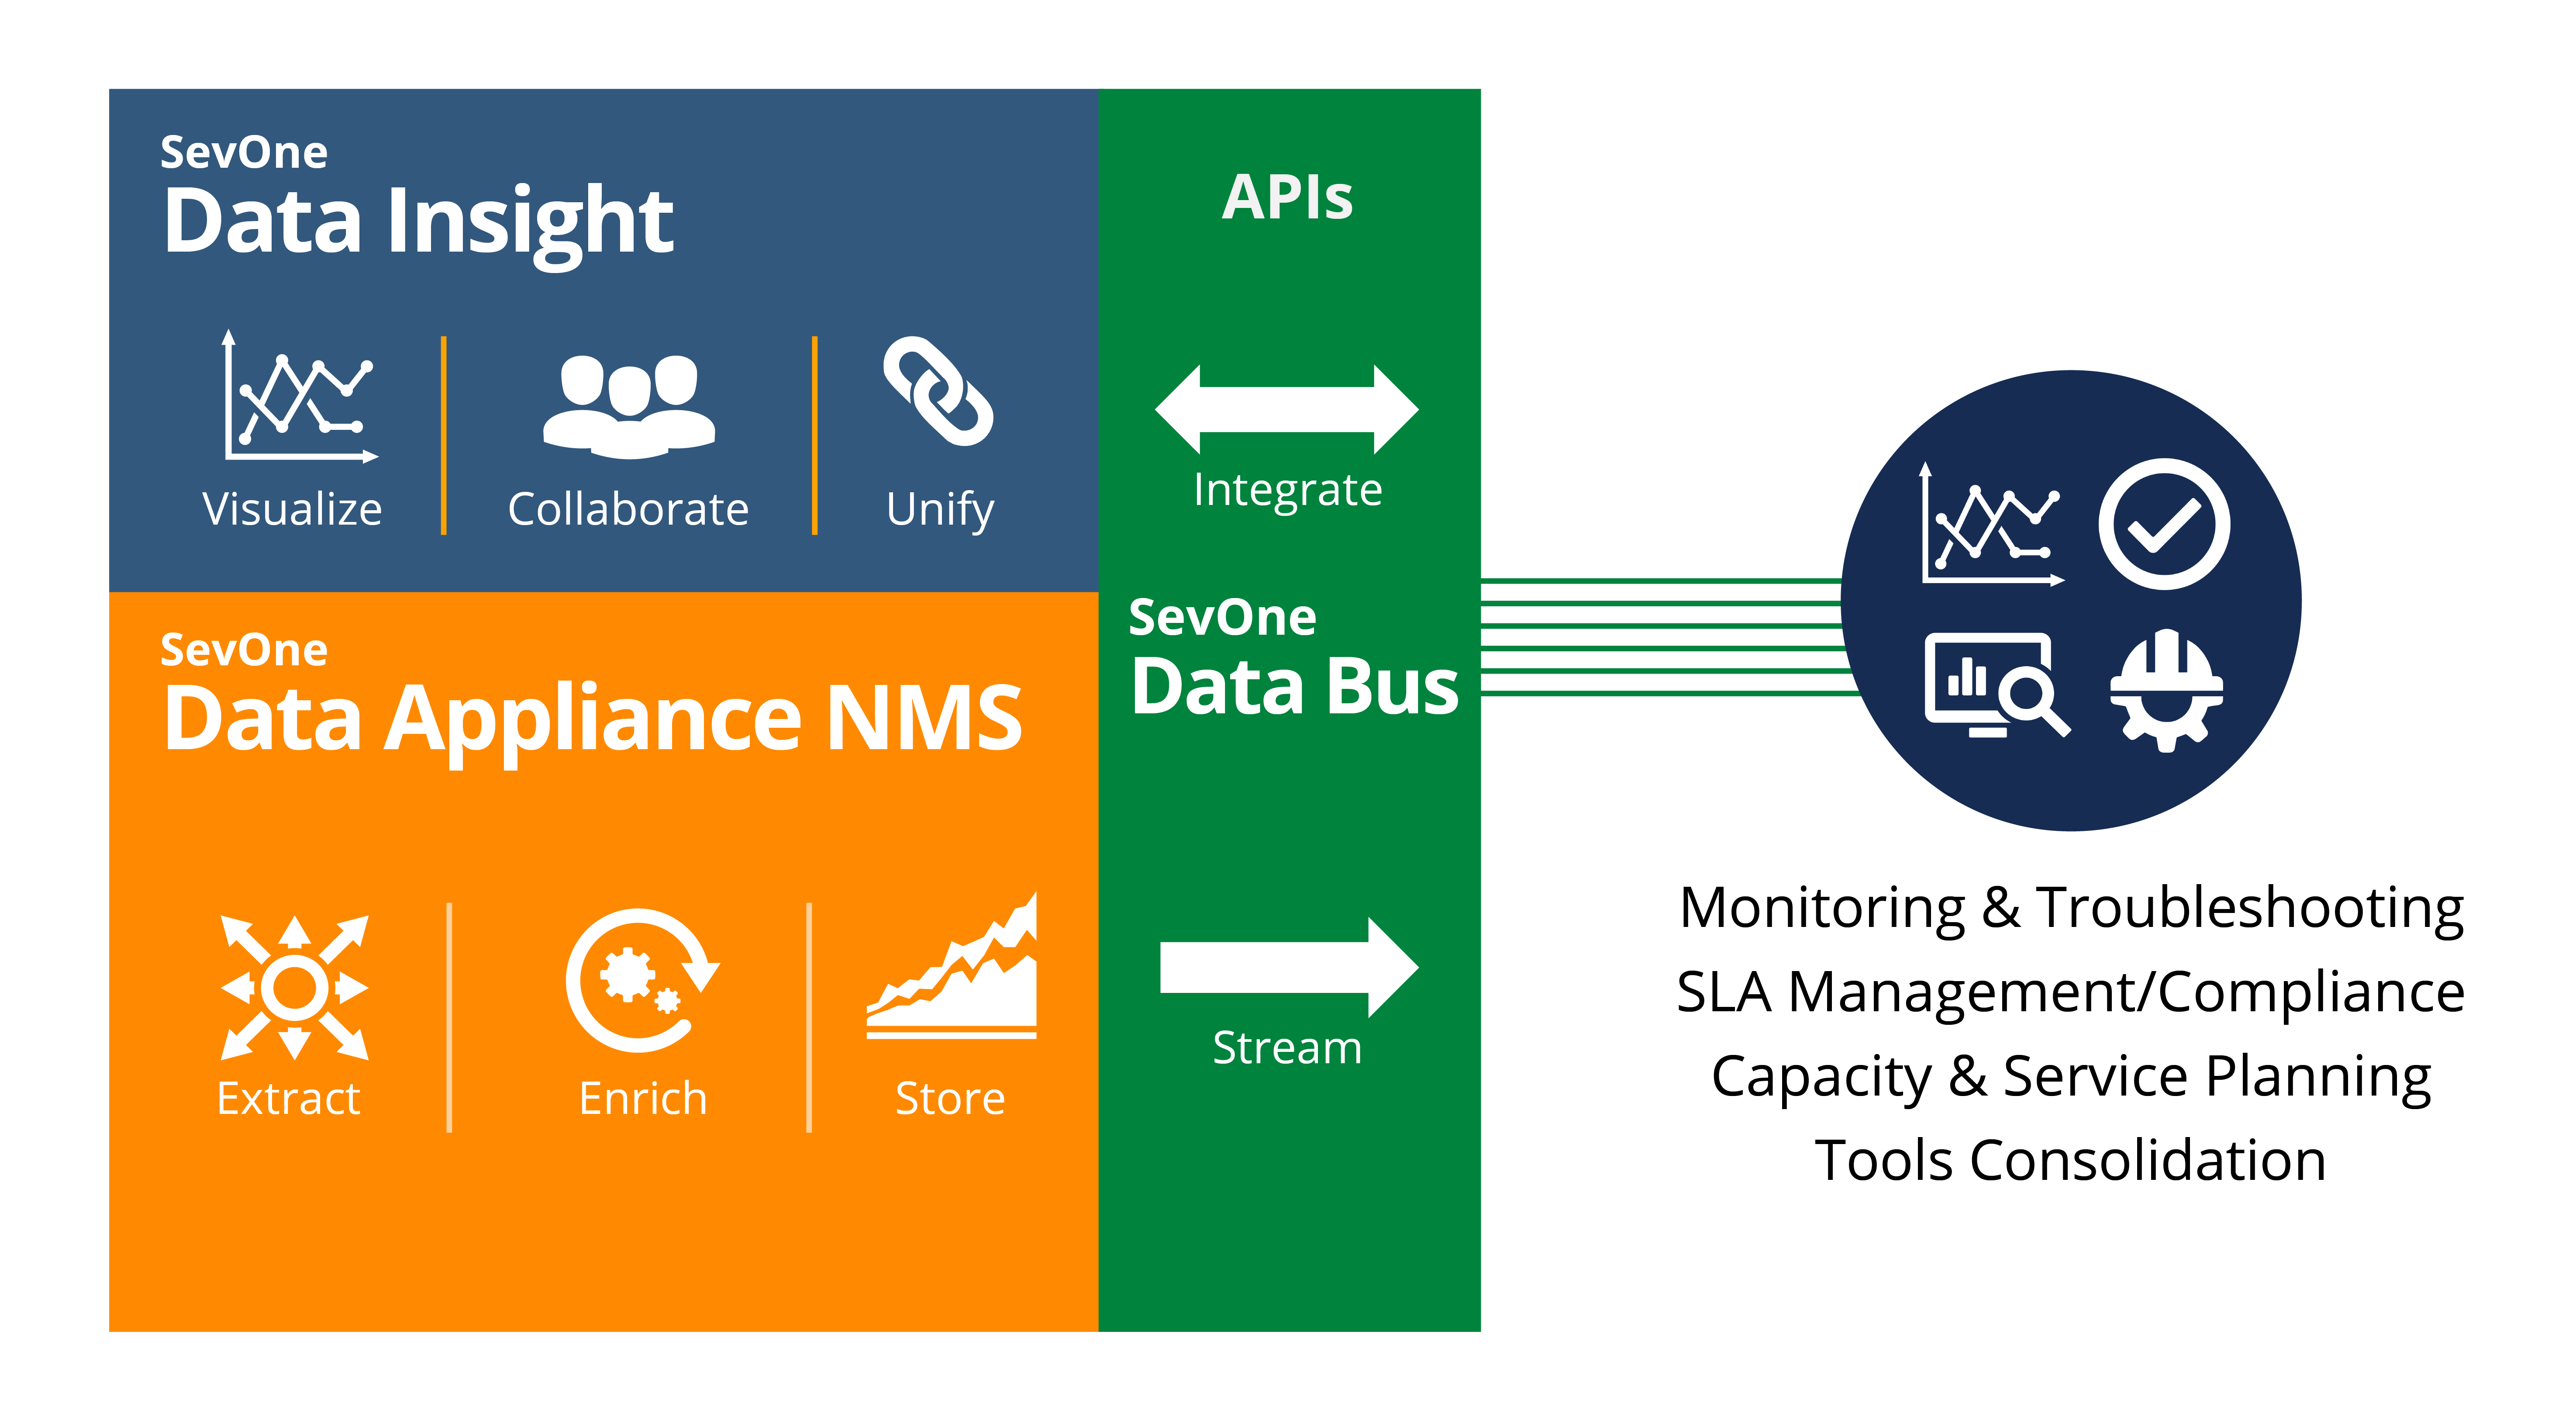 Data Bus stream